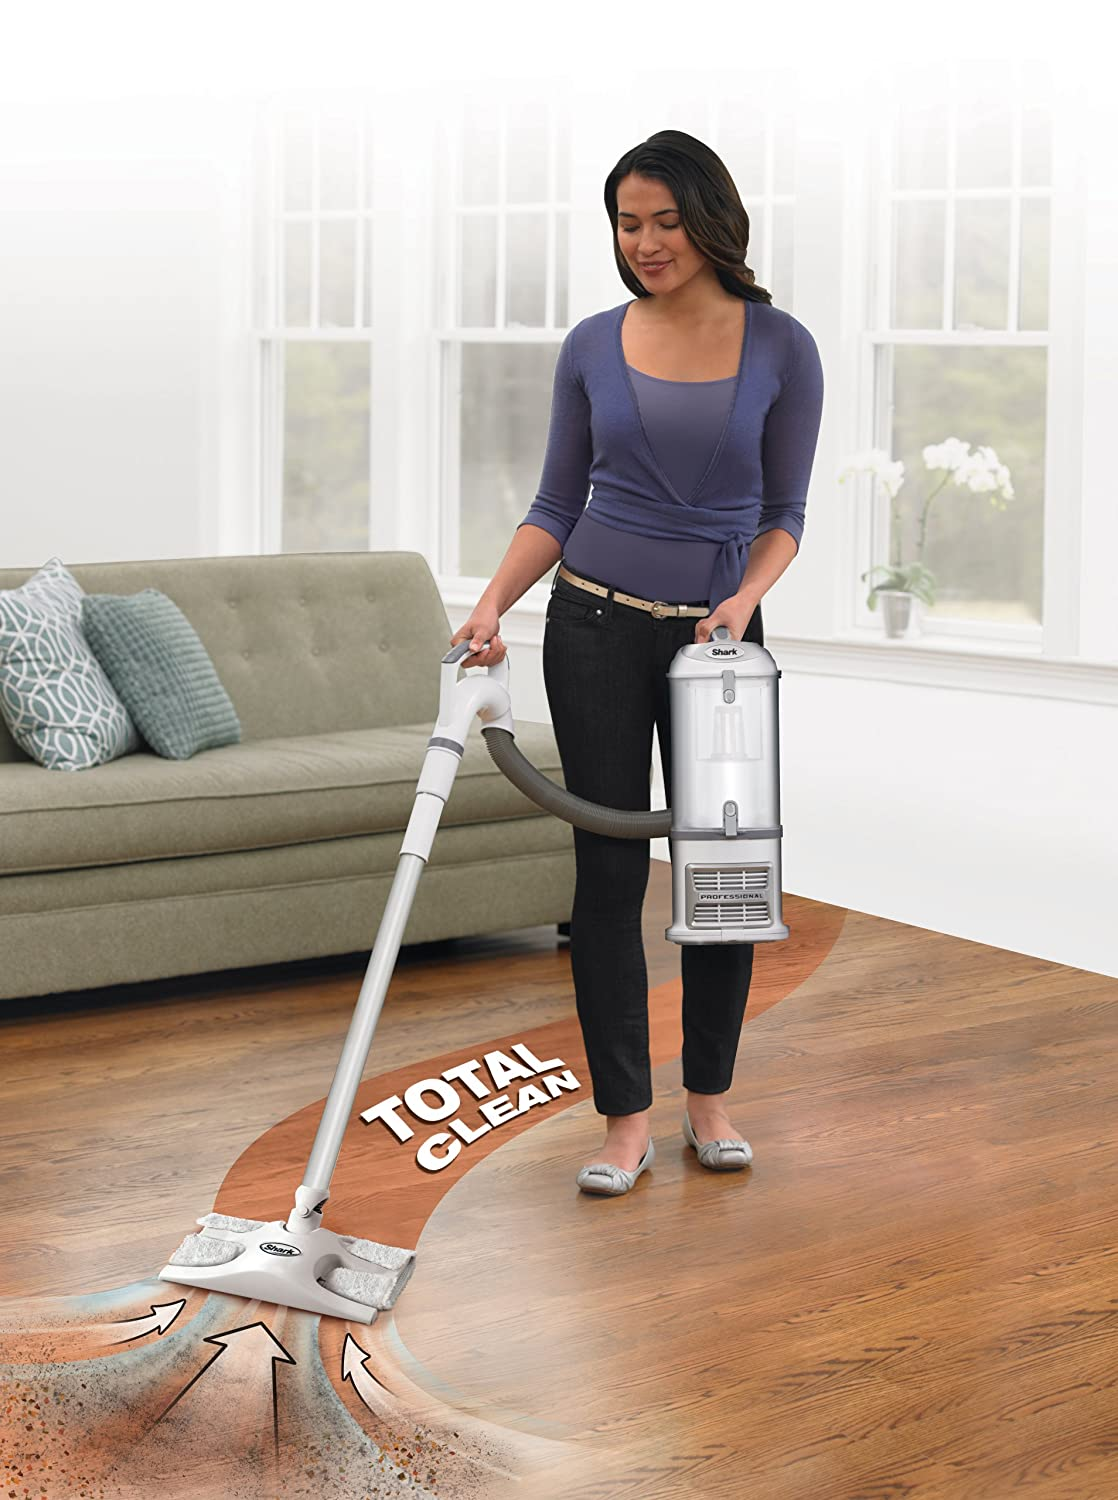 Top 7 Best Vacuum For Wood Floors Top Wood Floor Vacuum